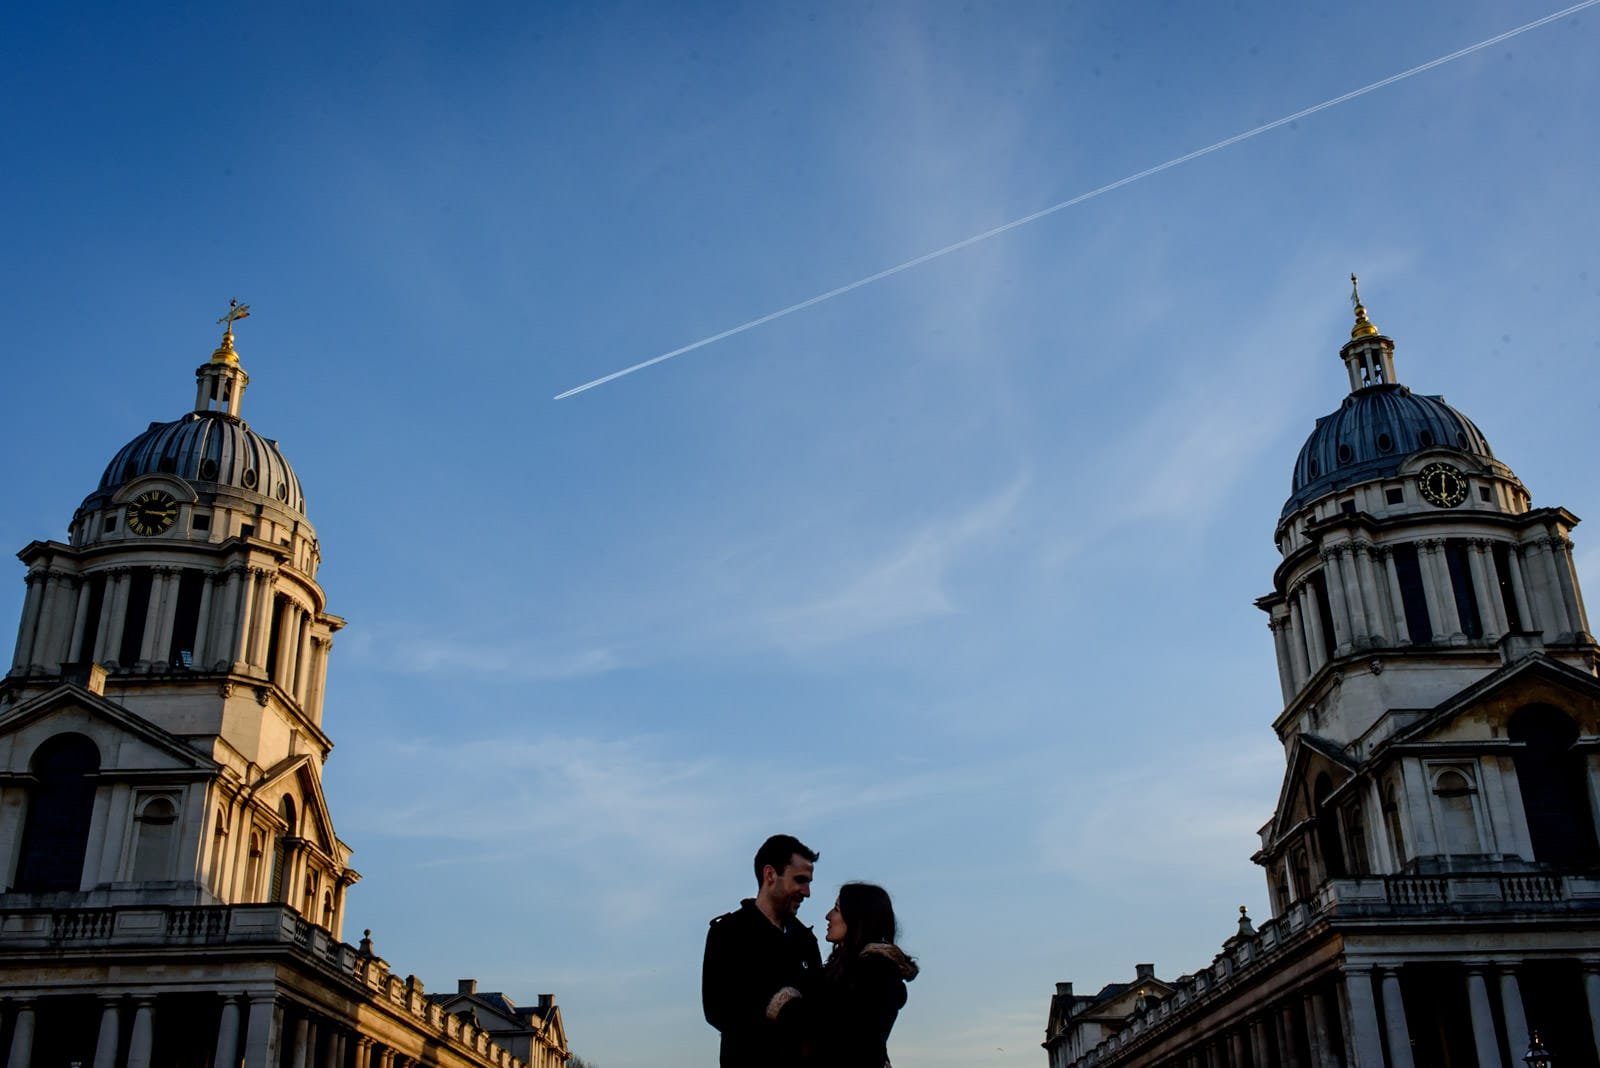 Engagement photos at Old Royal Navy College in Greenwich, couple silhouette against a blue sky